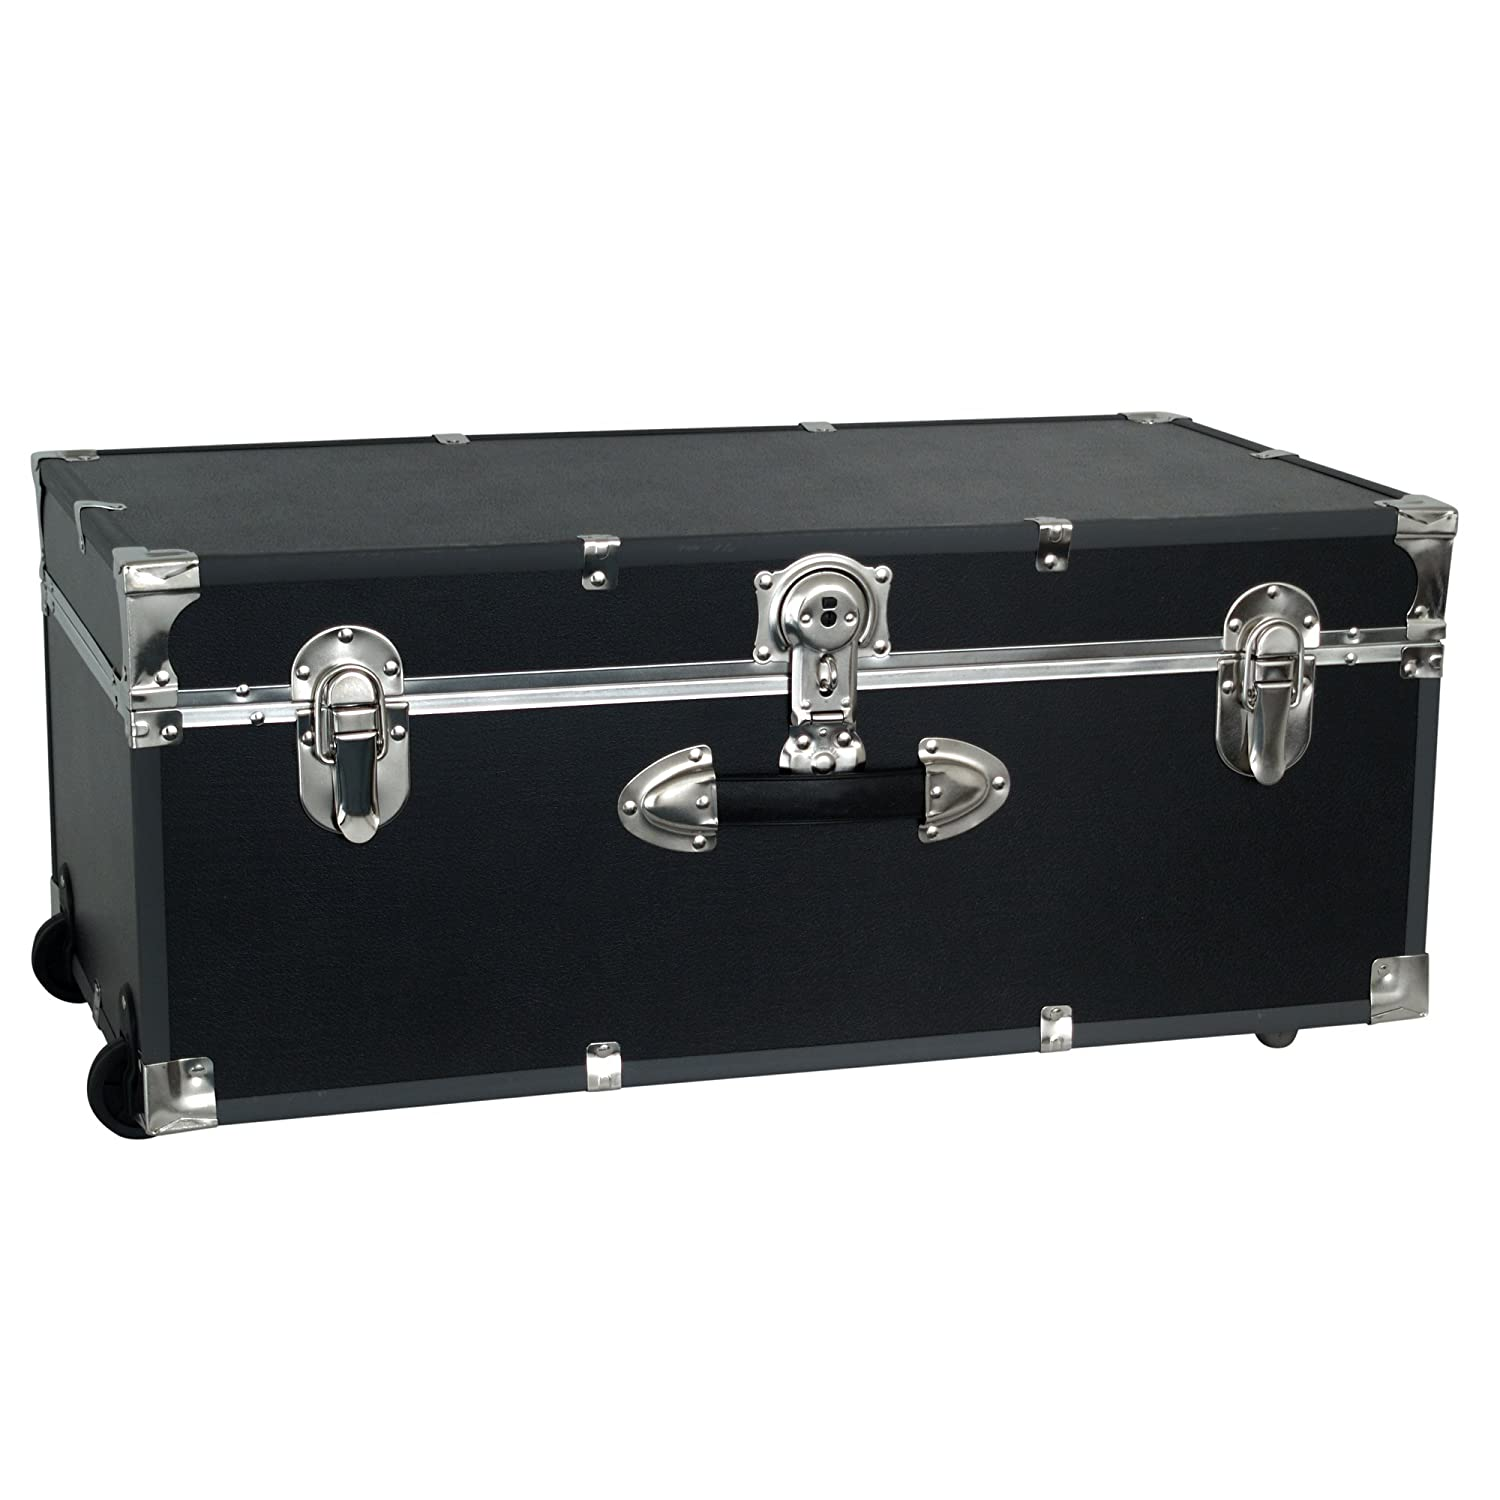 sc 1 st  Amazon.com & Amazon.com: Seward Trunk Wheeled Footlocker Black